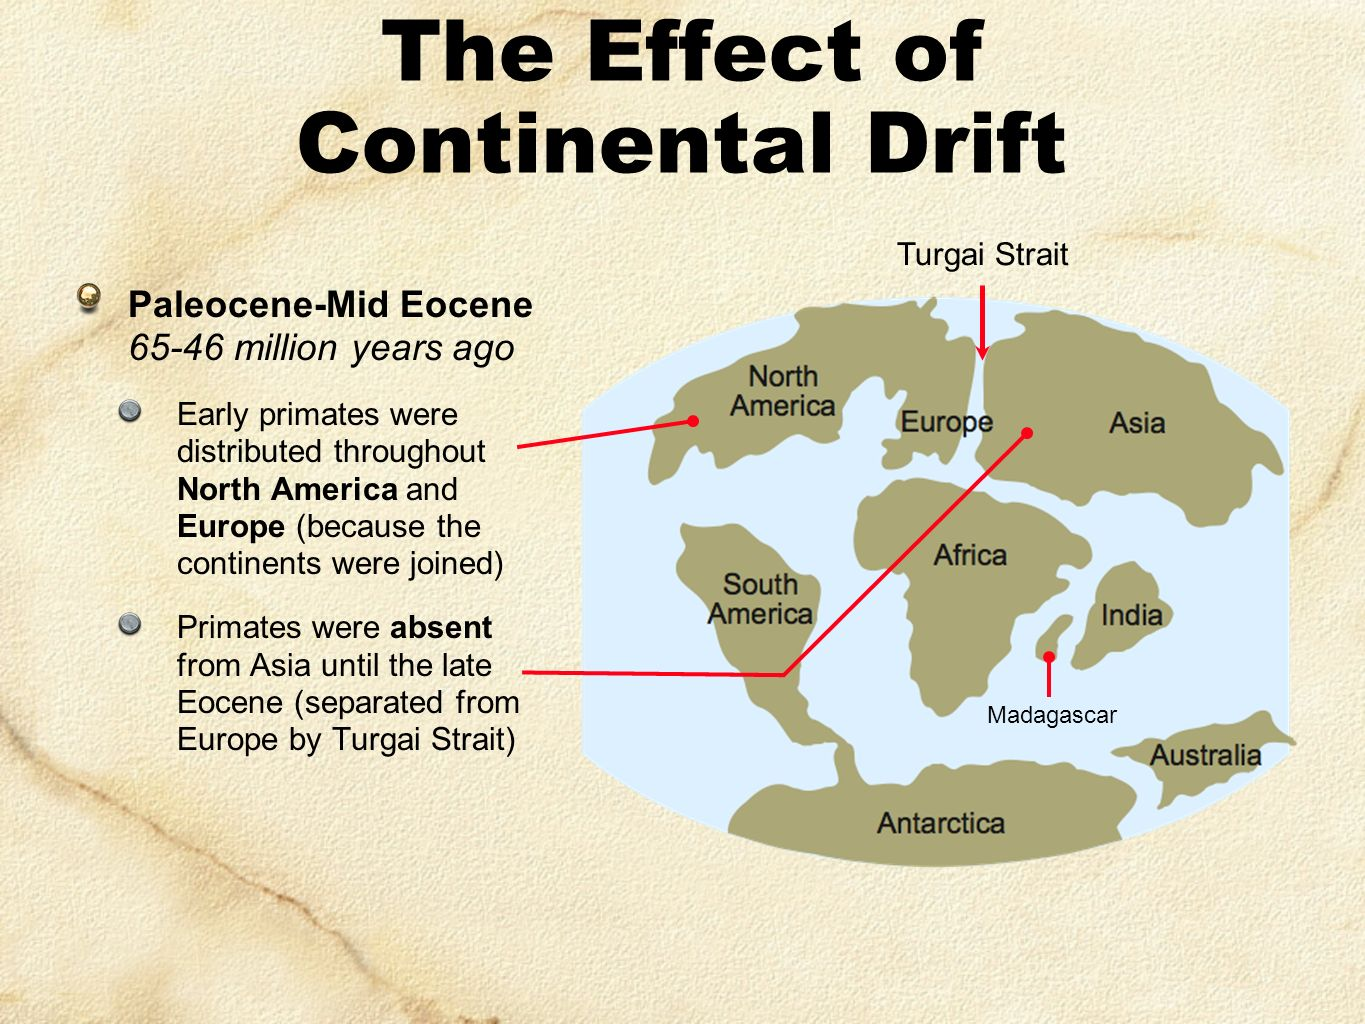 impact of continental drift on evolution Wegener and continental drift theory charles darwin was missing an important mechanism for evolution when he published the origin of species in 1859.